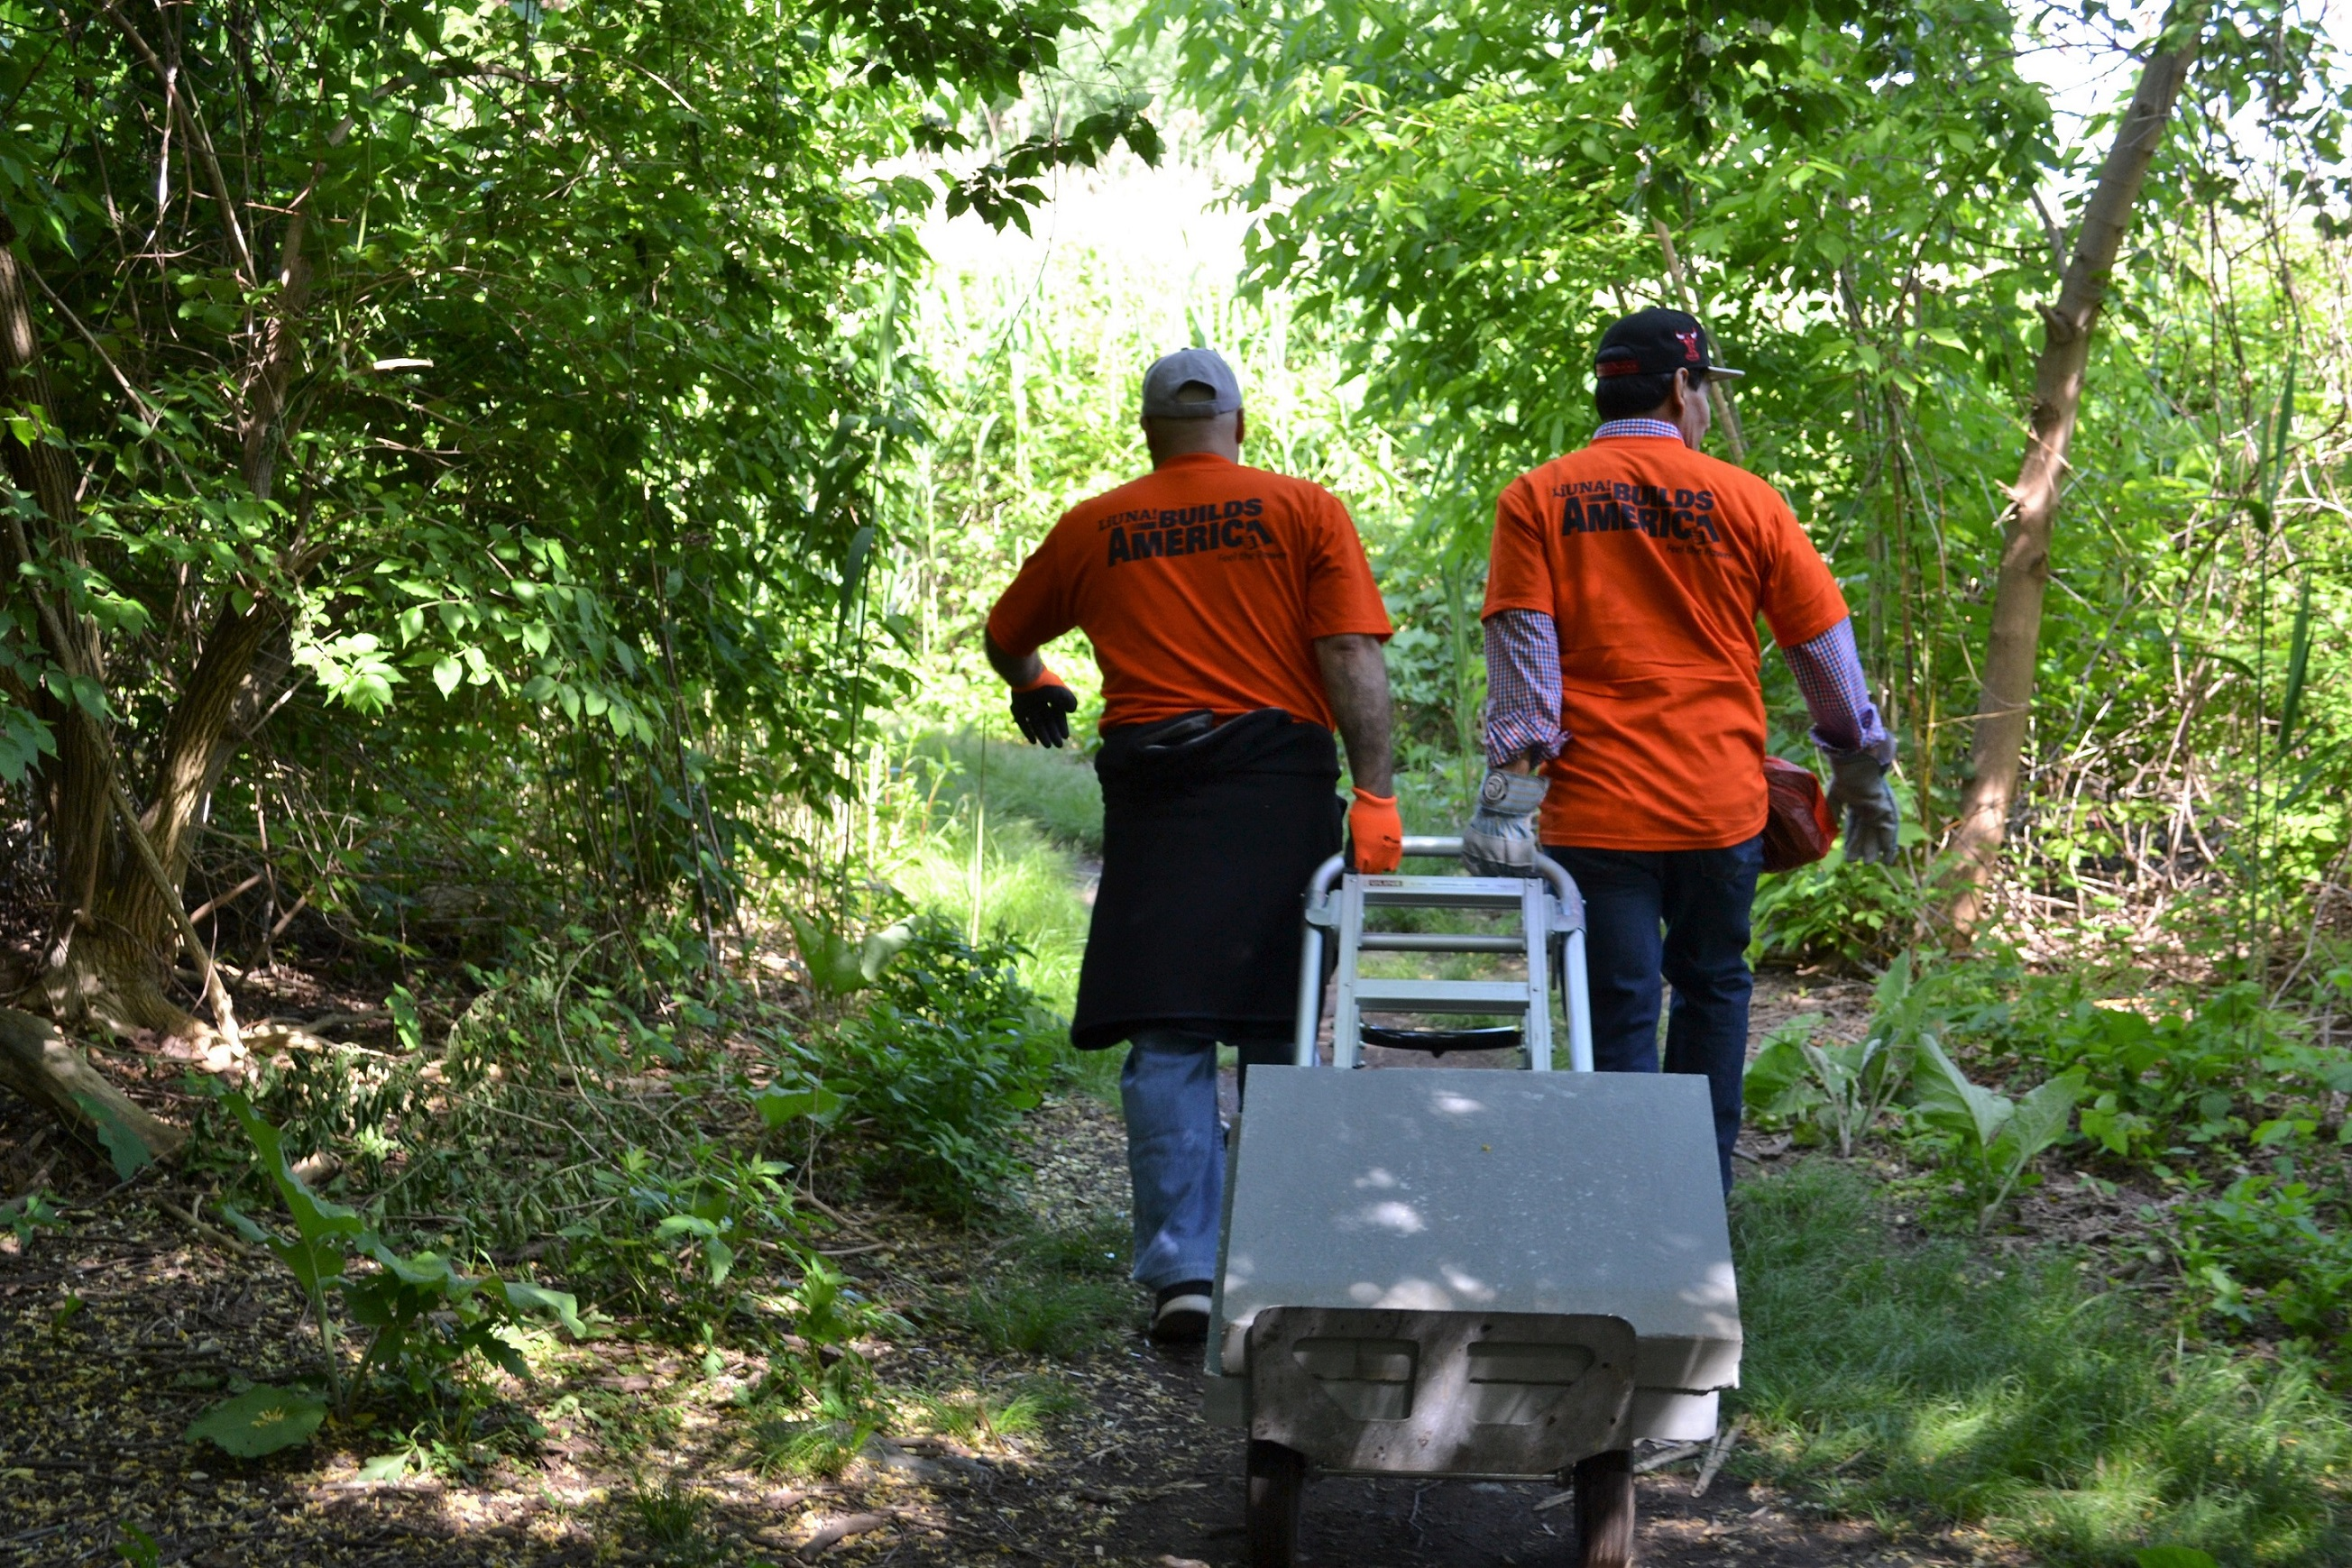 Local 79 Volunteers to Clean Up Flushing Meadows-Corona Park